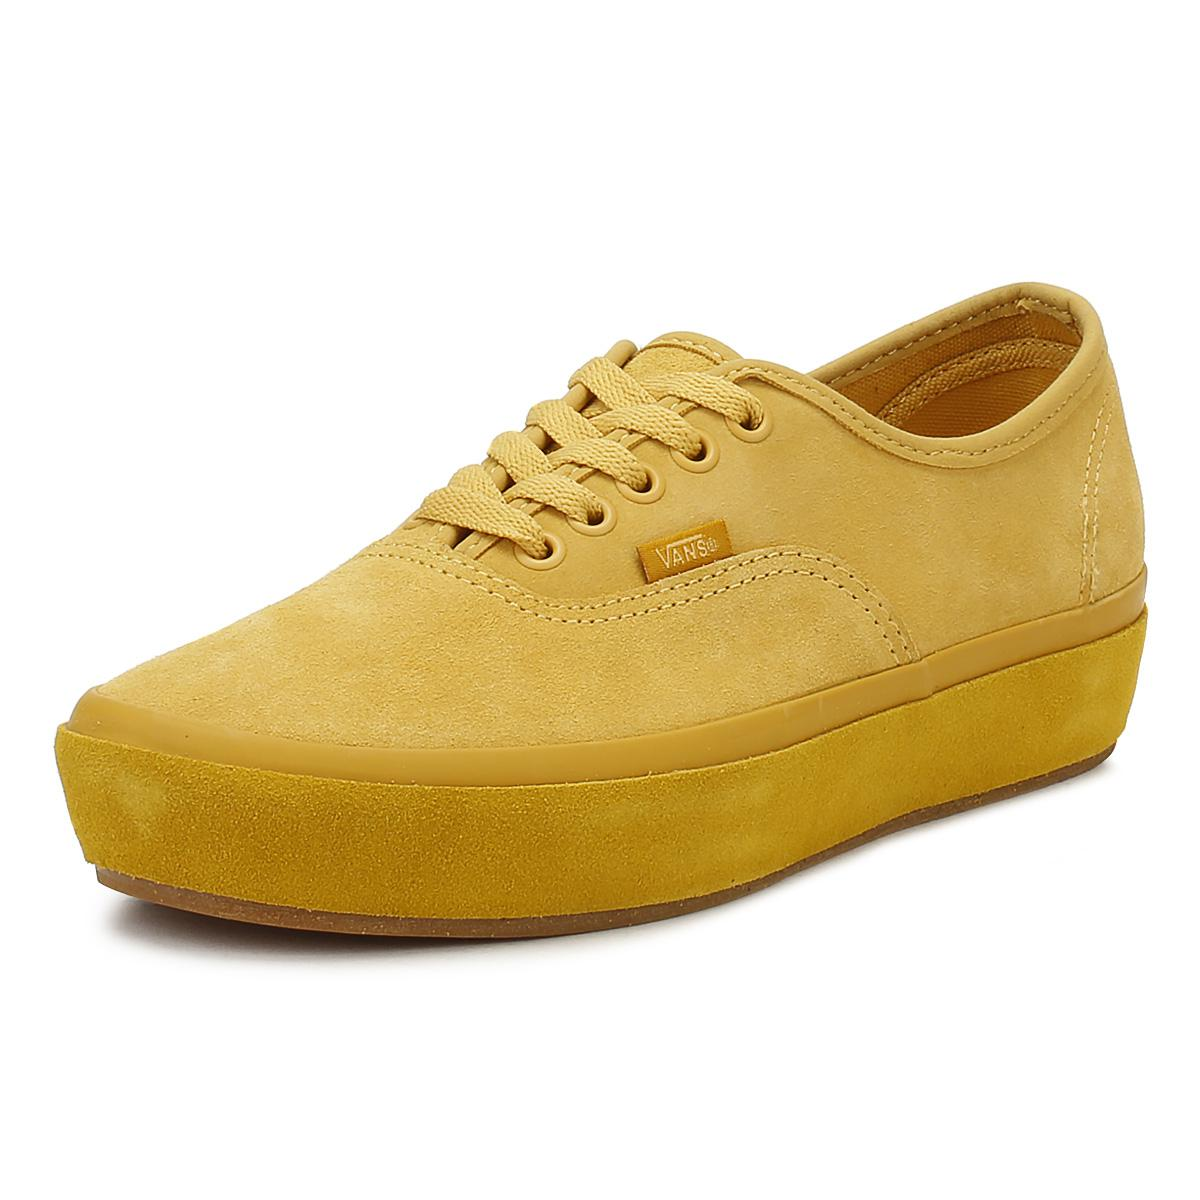 0f488be9ad1e Lyst - Vans Womens Ochre Yellow Authentic Platform Trainers in Yellow